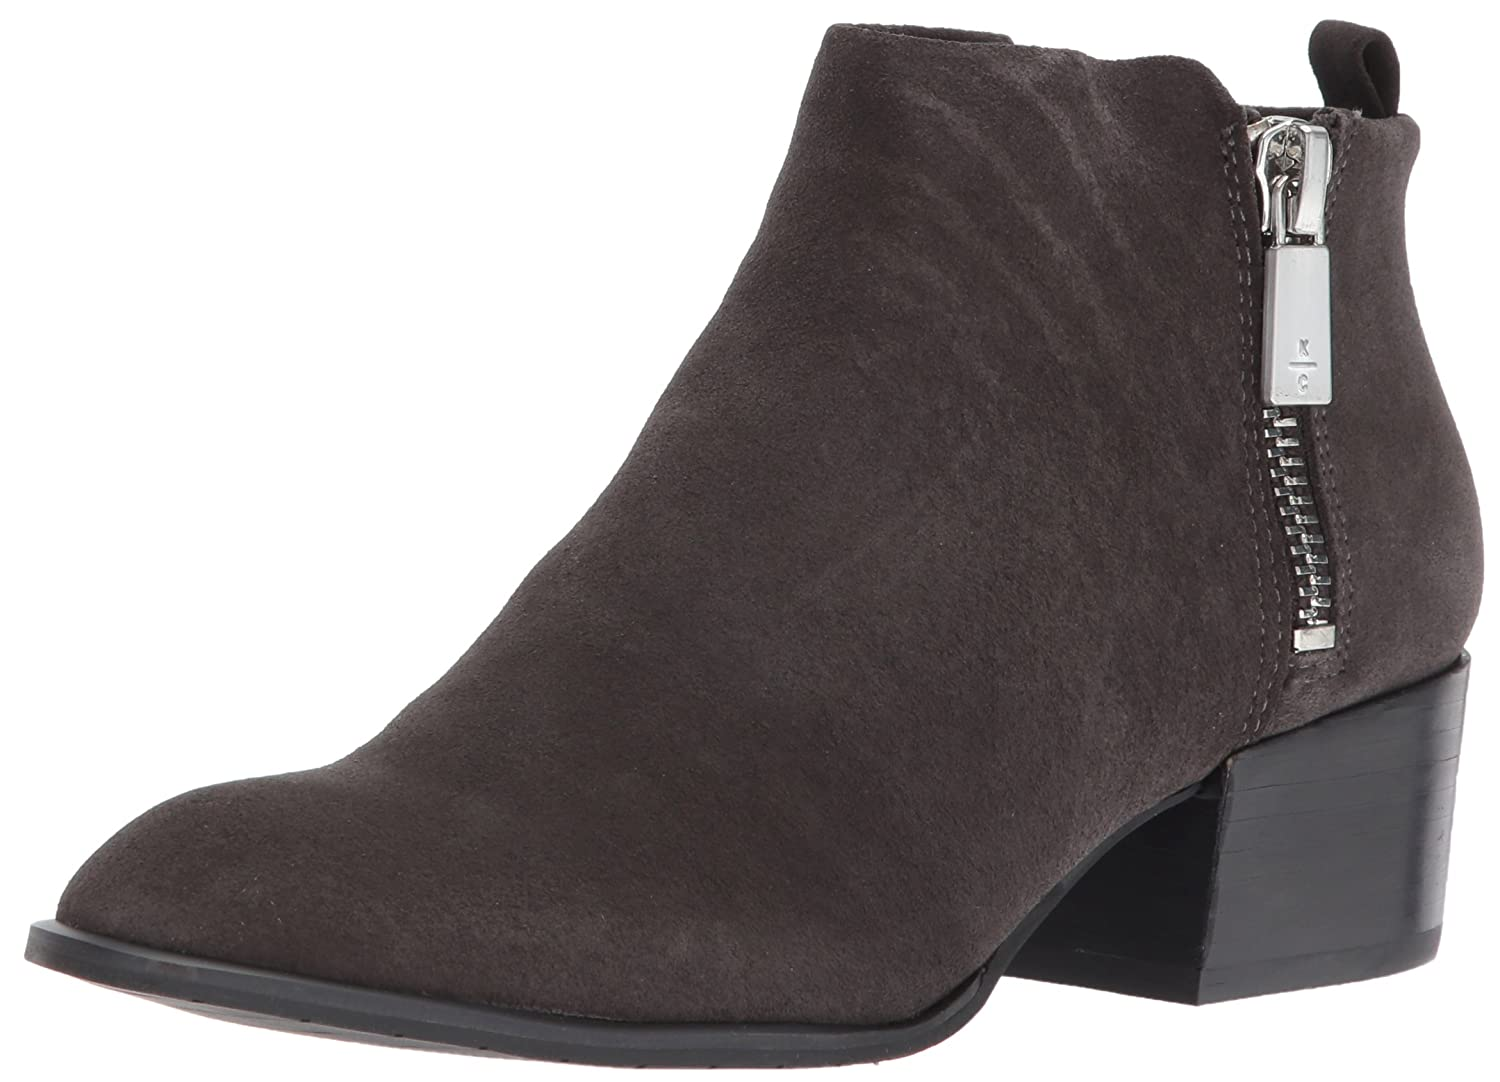 Kenneth Cole New York Women's Addy Western Double Zip Low Heel Suede Ankle Bootie B06ZYM67JY 5.5 B(M) US|Asphault